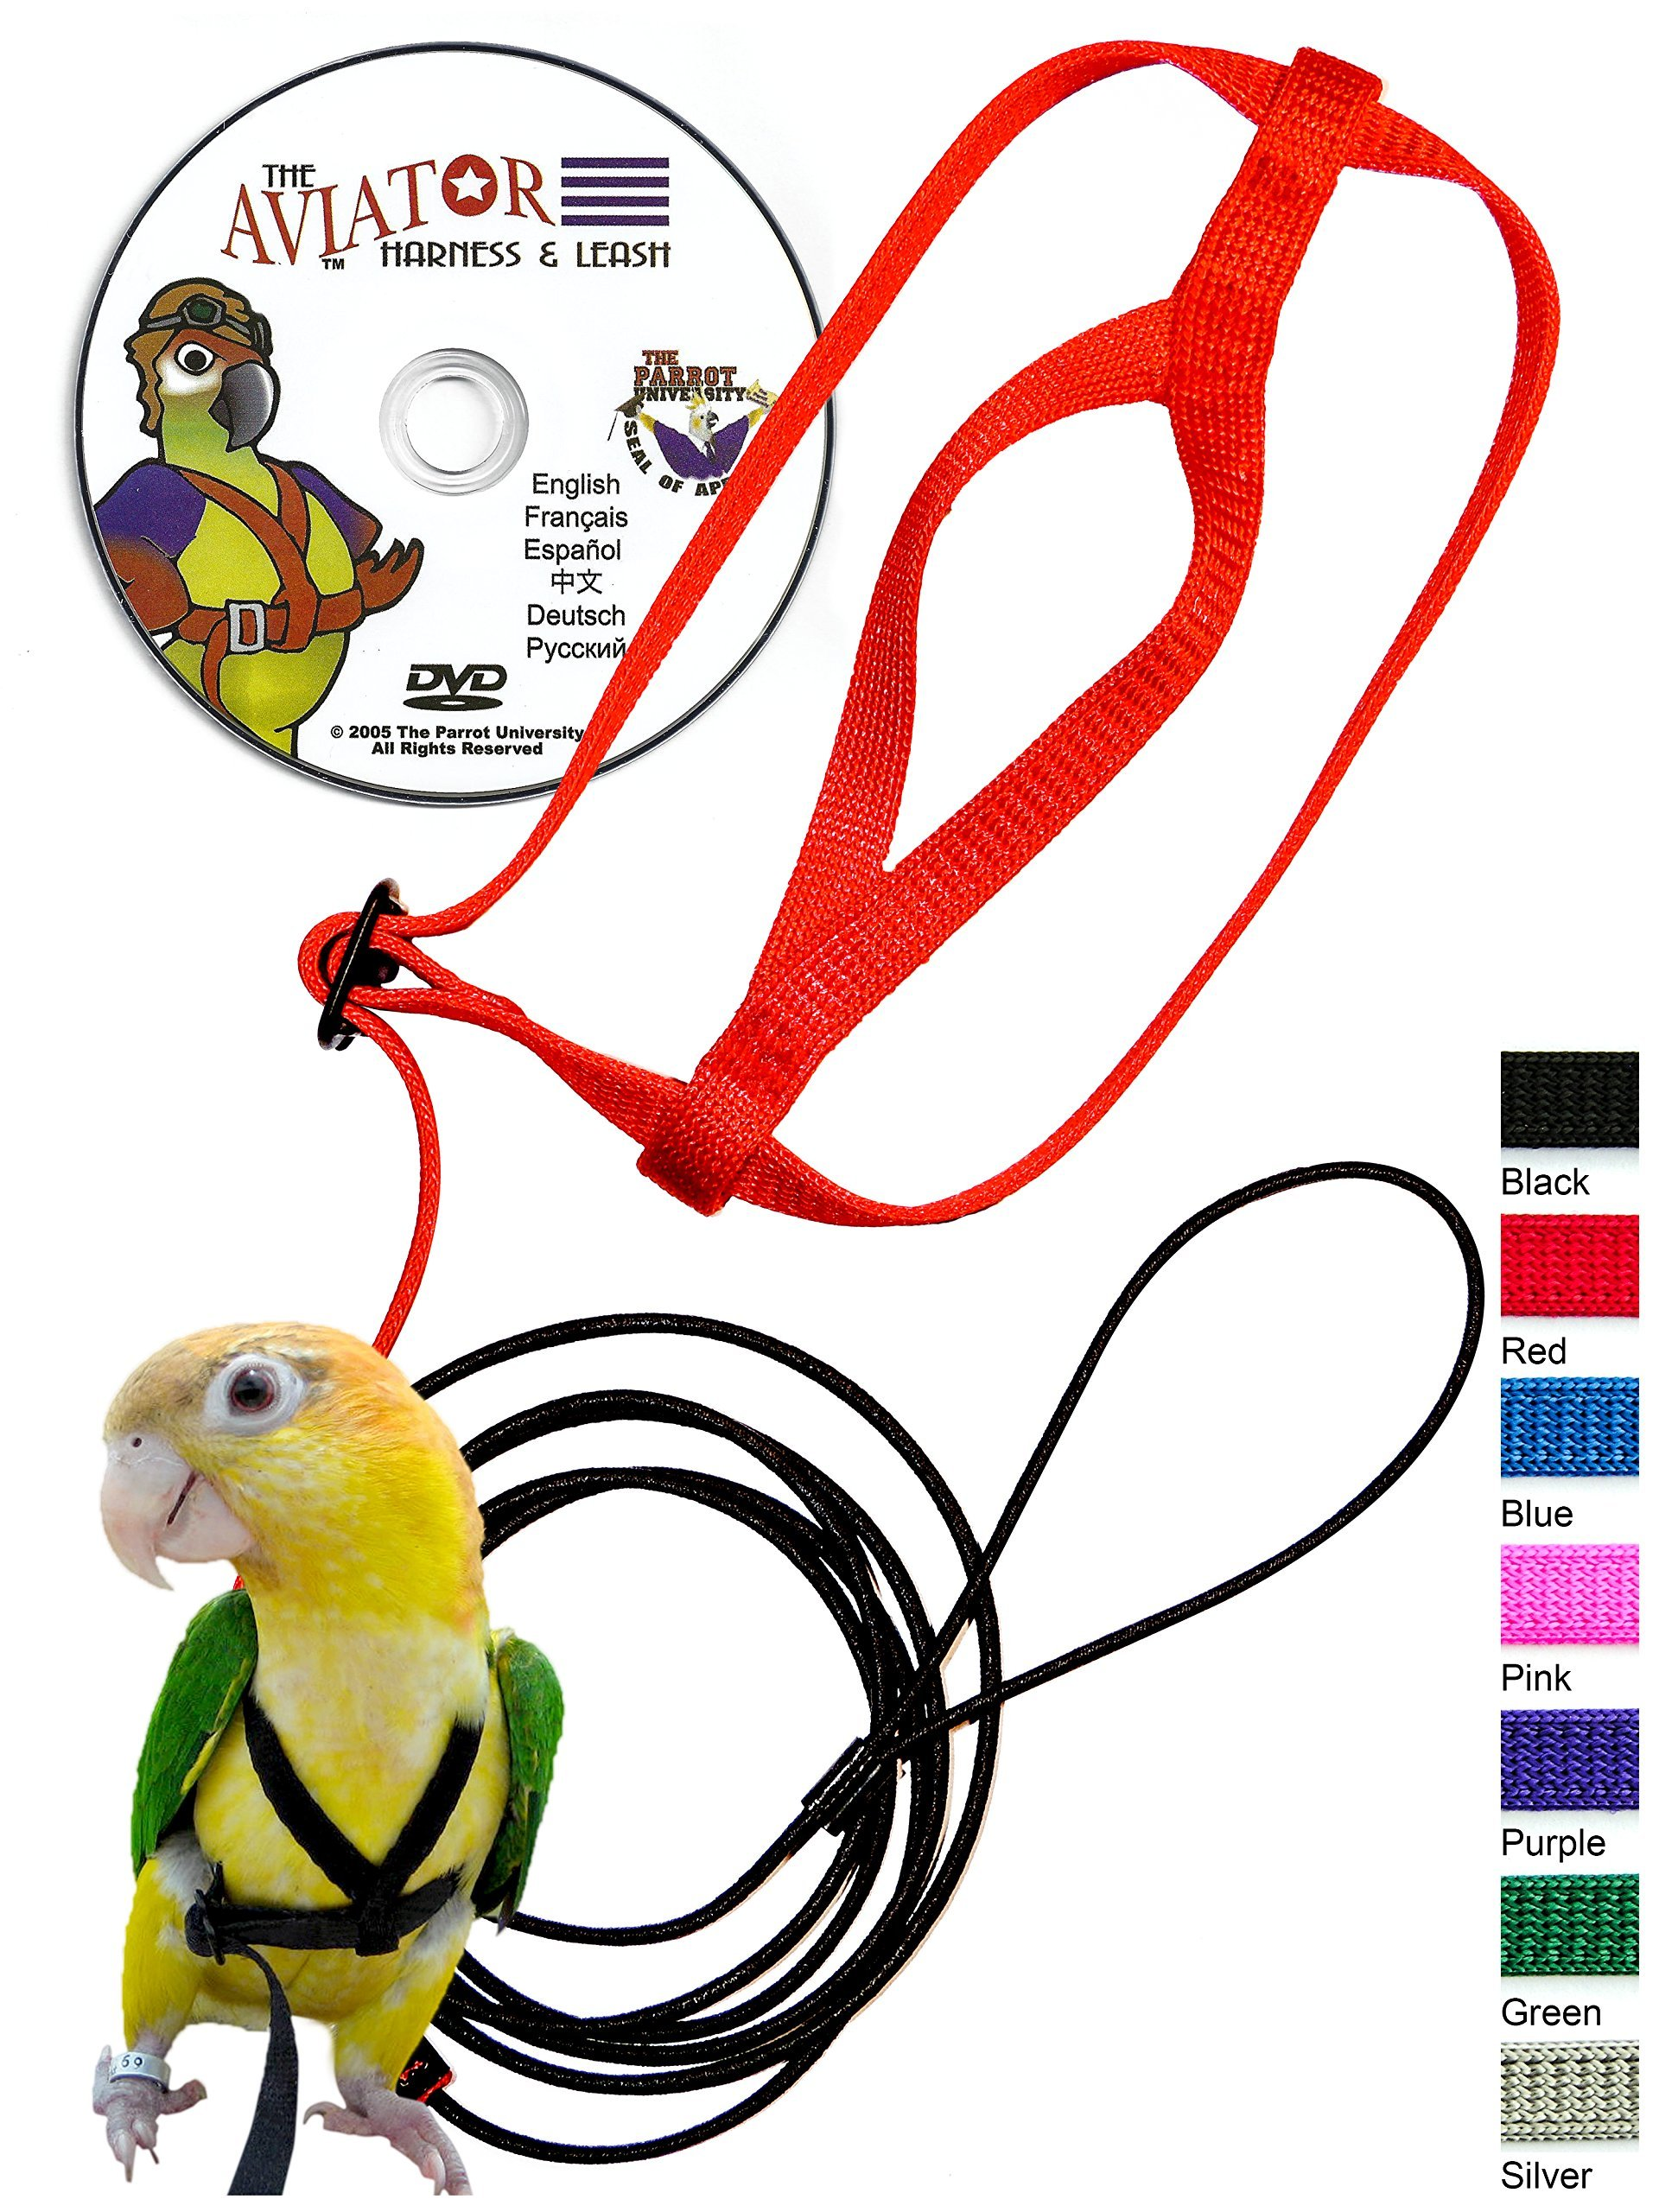 The AVIATOR Pet Bird Harness and Leash: X-Small Red